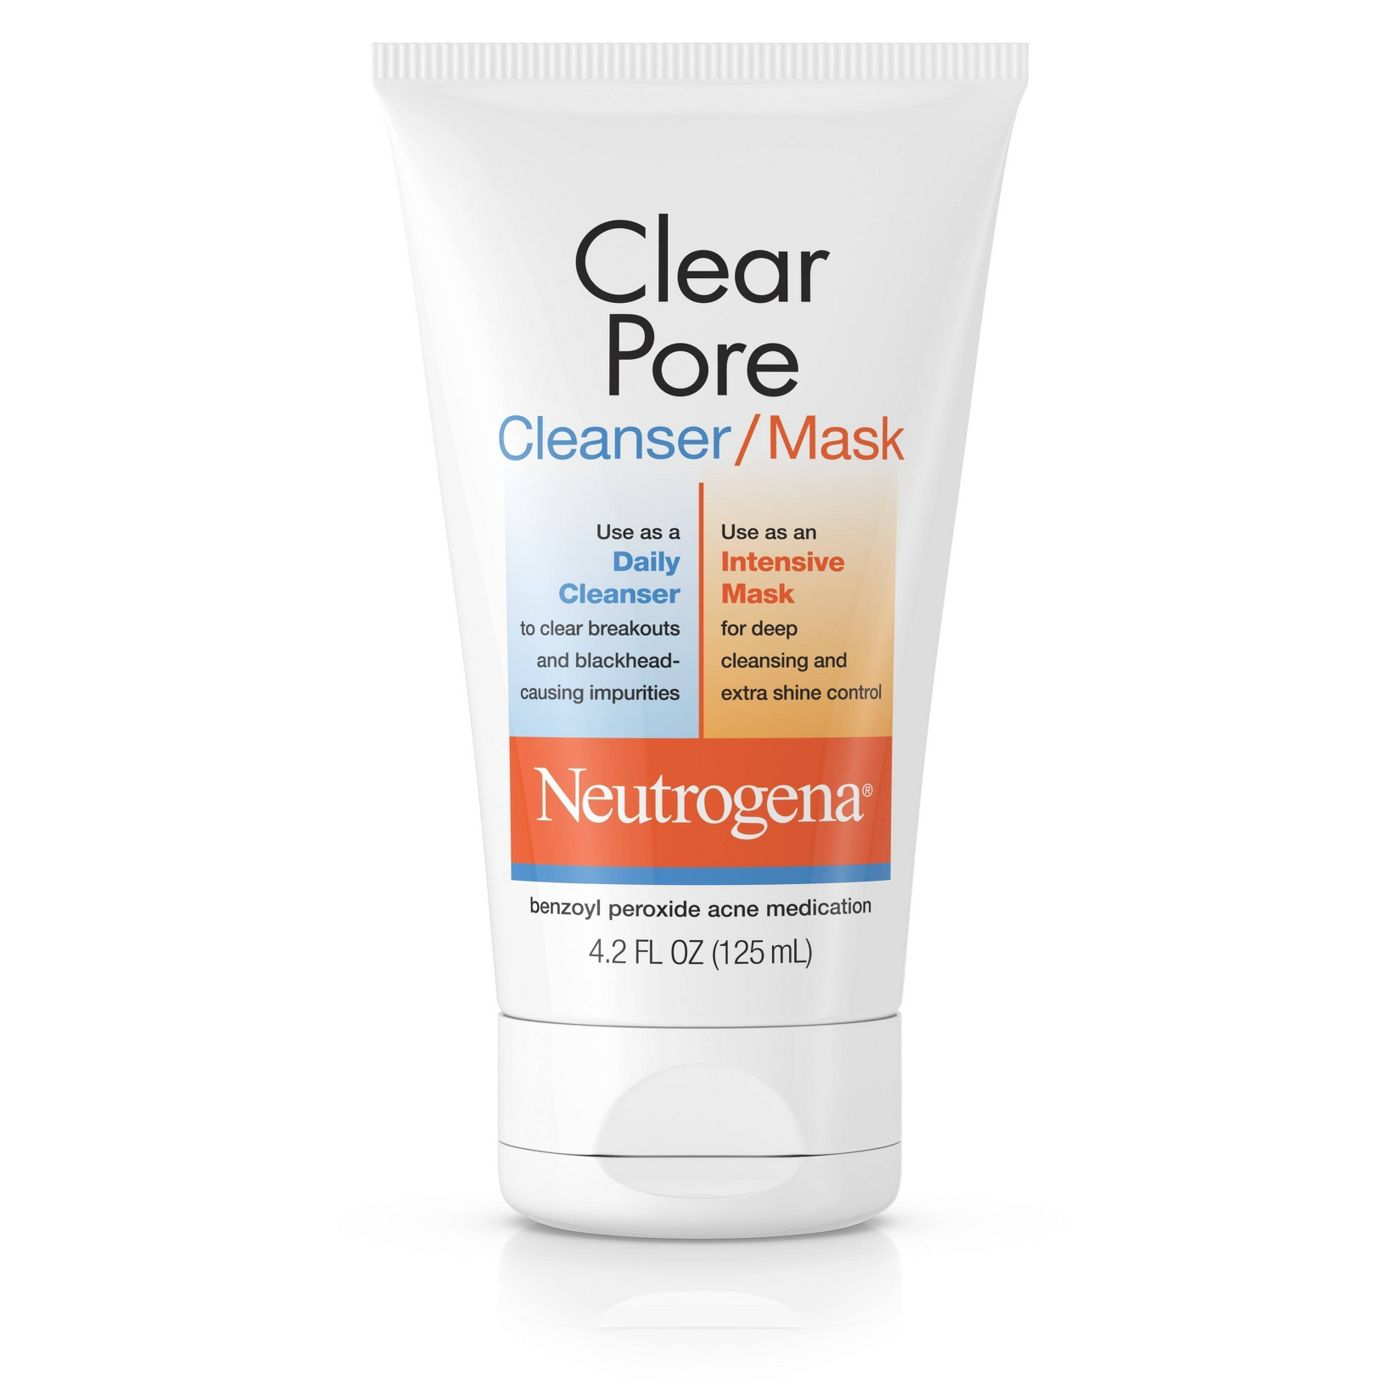 Neutrogena Clear Pore Facial Cleanser/Mask